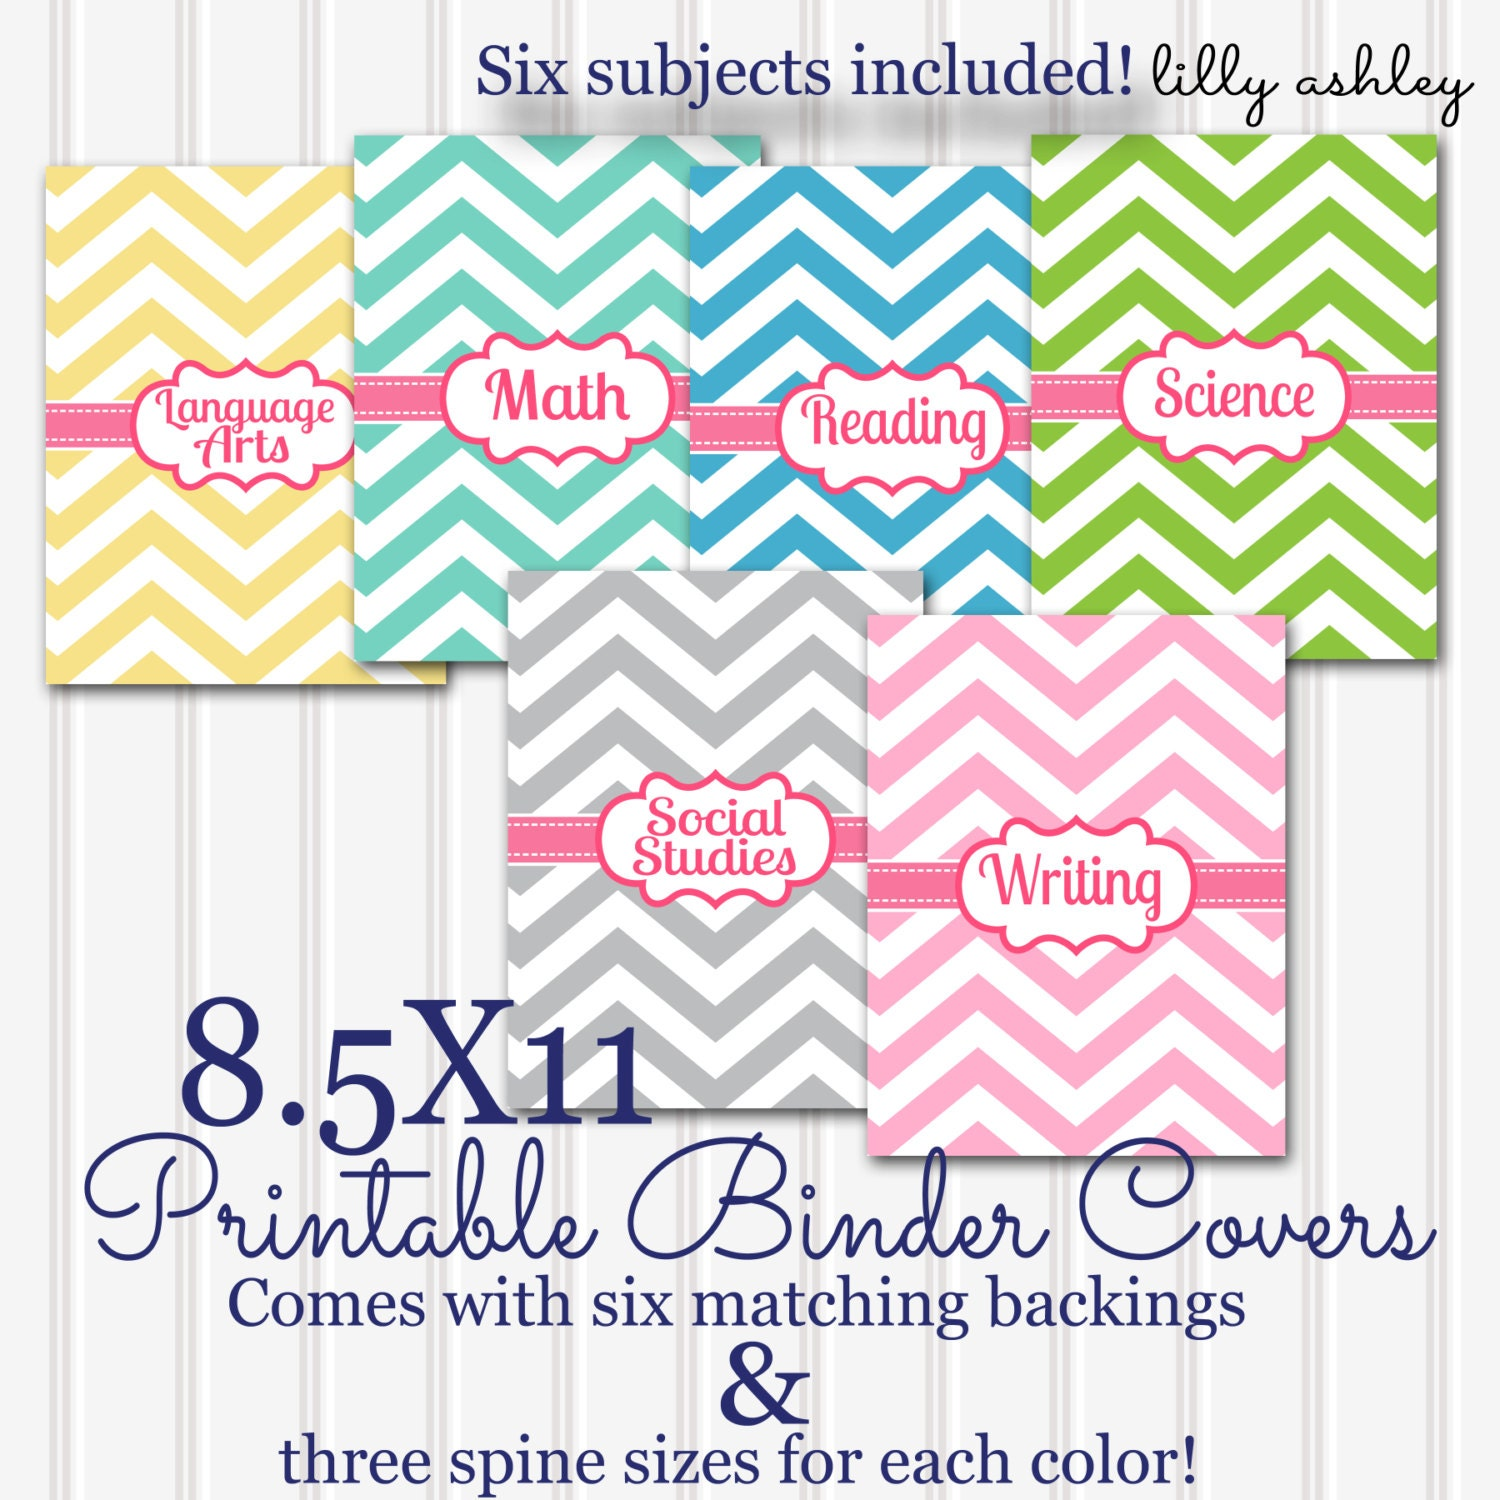 Printable Binder Covers SET 6 Subjects 8.5x11 JPG Not